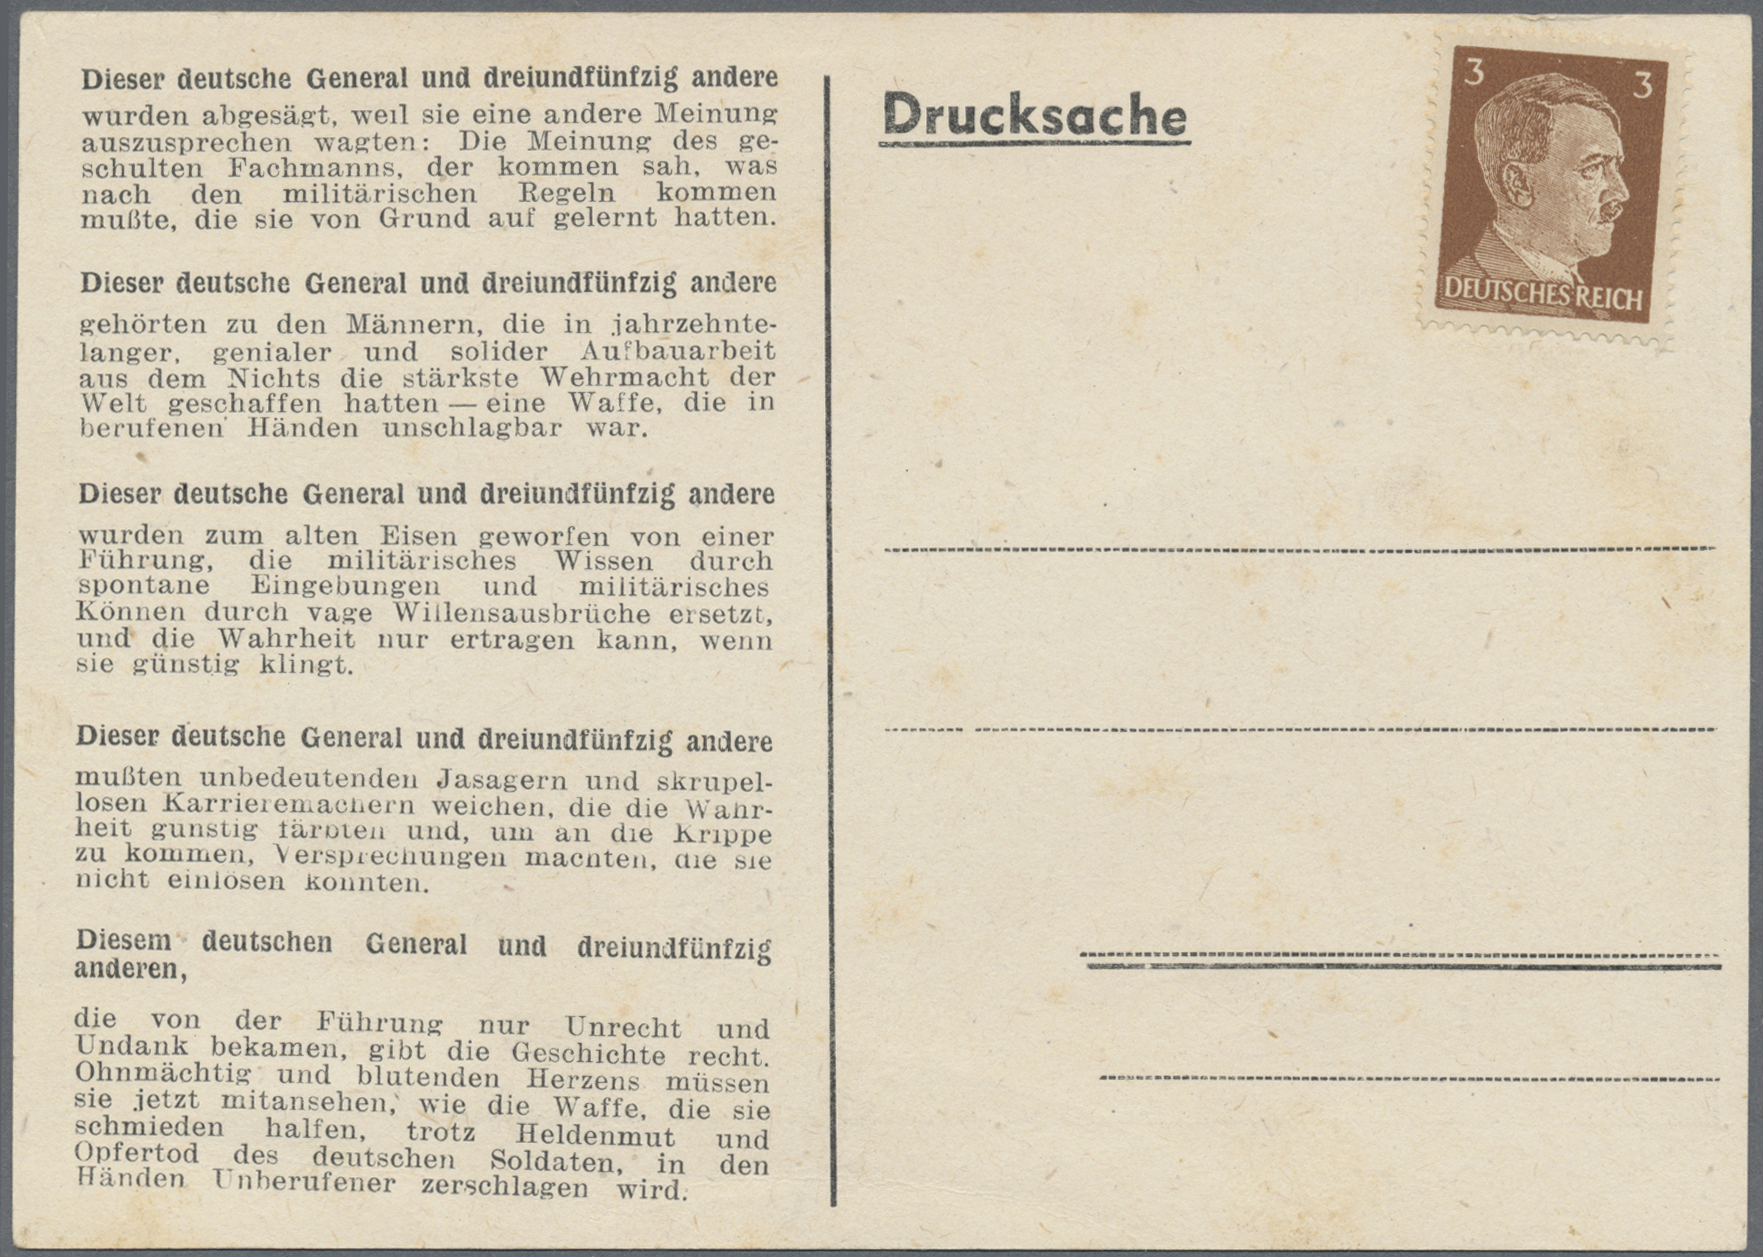 Lot 23606 - Kriegs- und Propagandafälschungen  -  Auktionshaus Christoph Gärtner GmbH & Co. KG Single lots Germany + Picture Postcards. Auction #39 Day 5